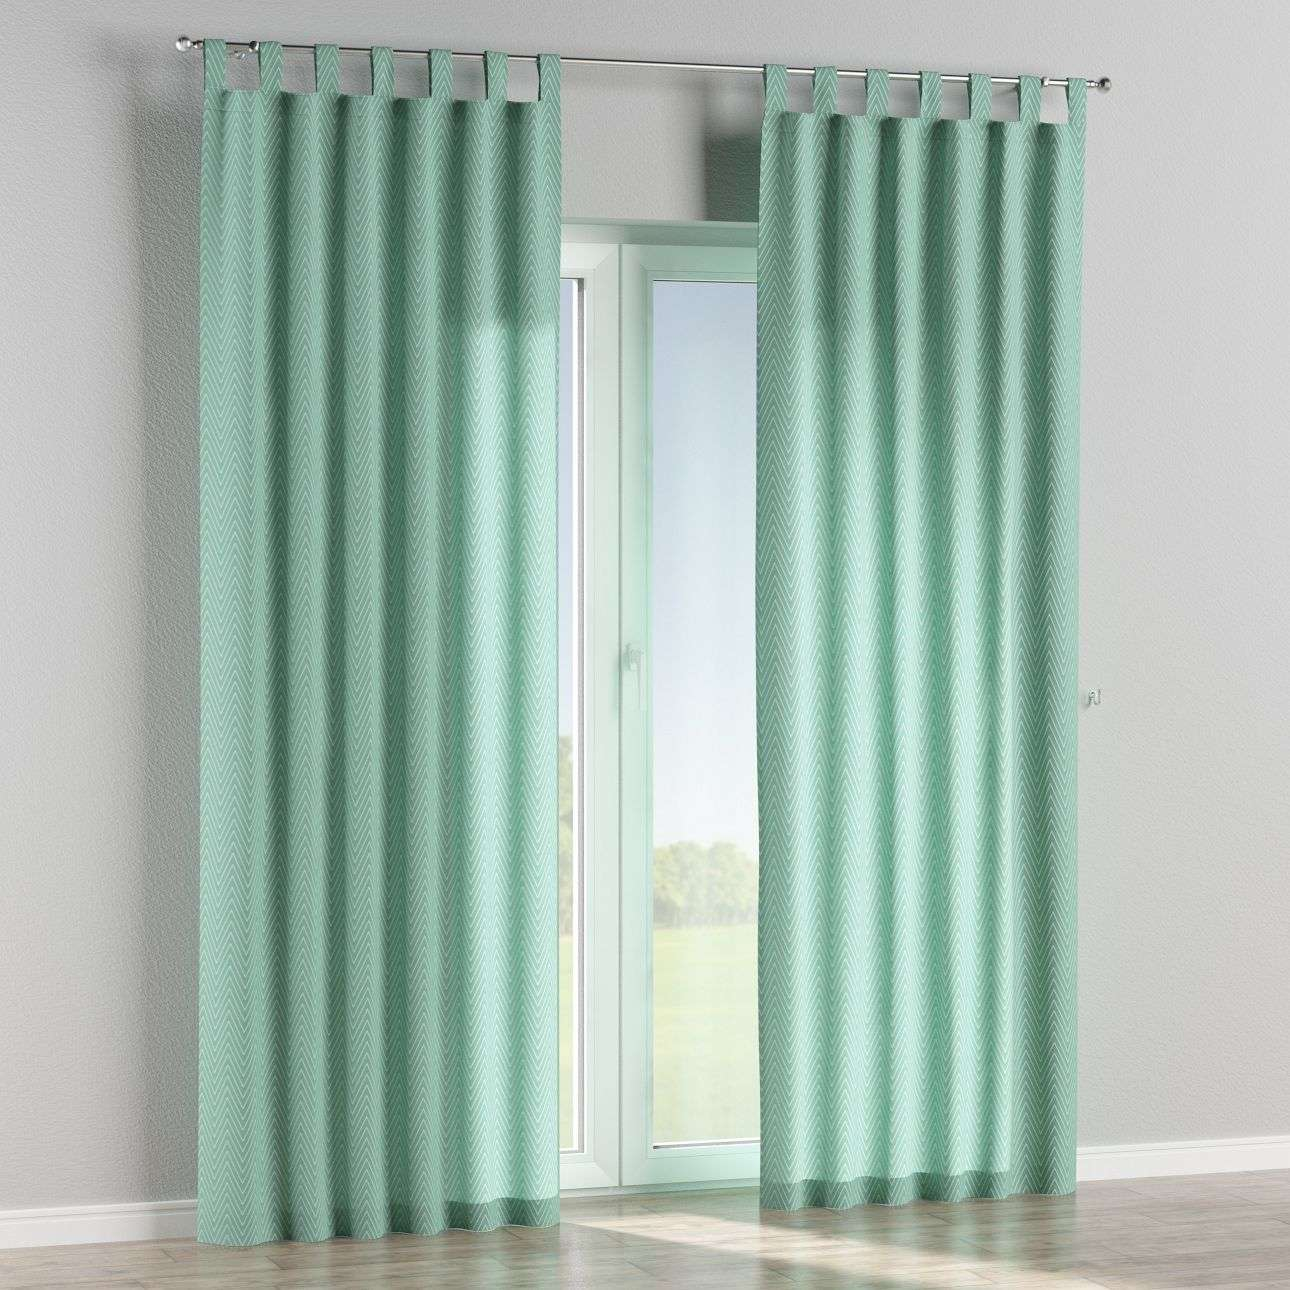 Tab top curtains in collection Brooklyn, fabric: 137-90